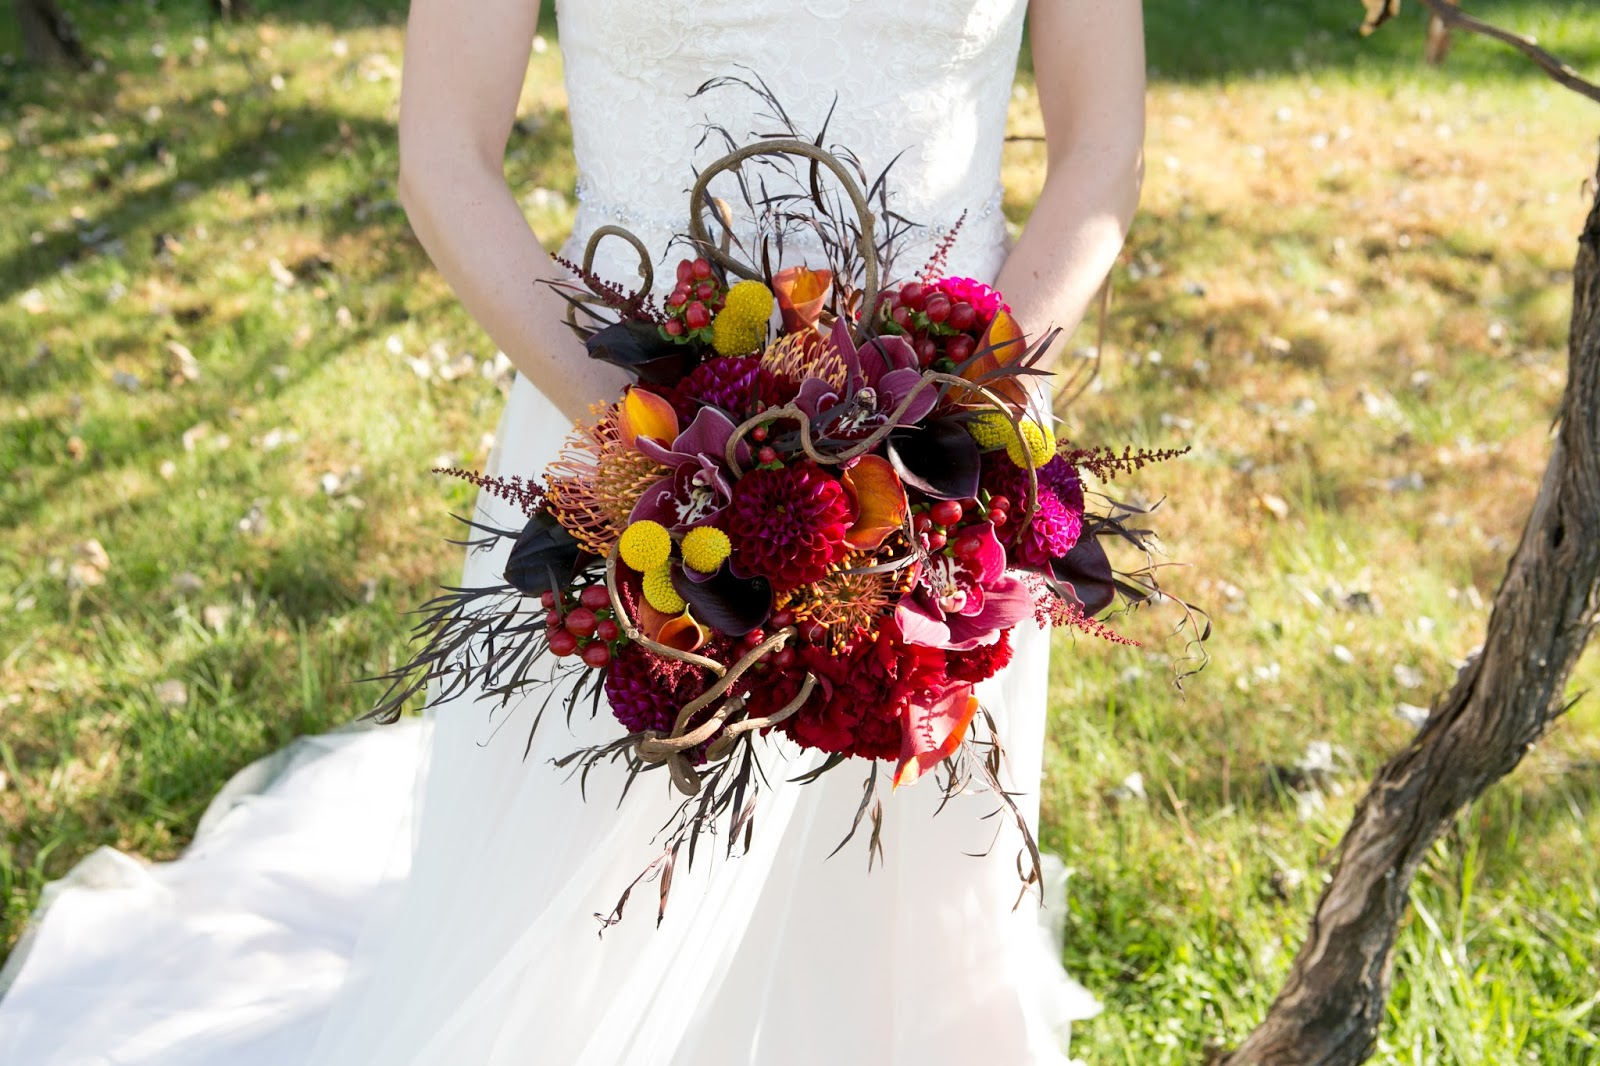 A wine inspired fall wedding sweet blossoms the boutonnieres were created with dark purple and orange calla lilies craspedia and red hypericum berries i used a little bit of greenery and tied them izmirmasajfo